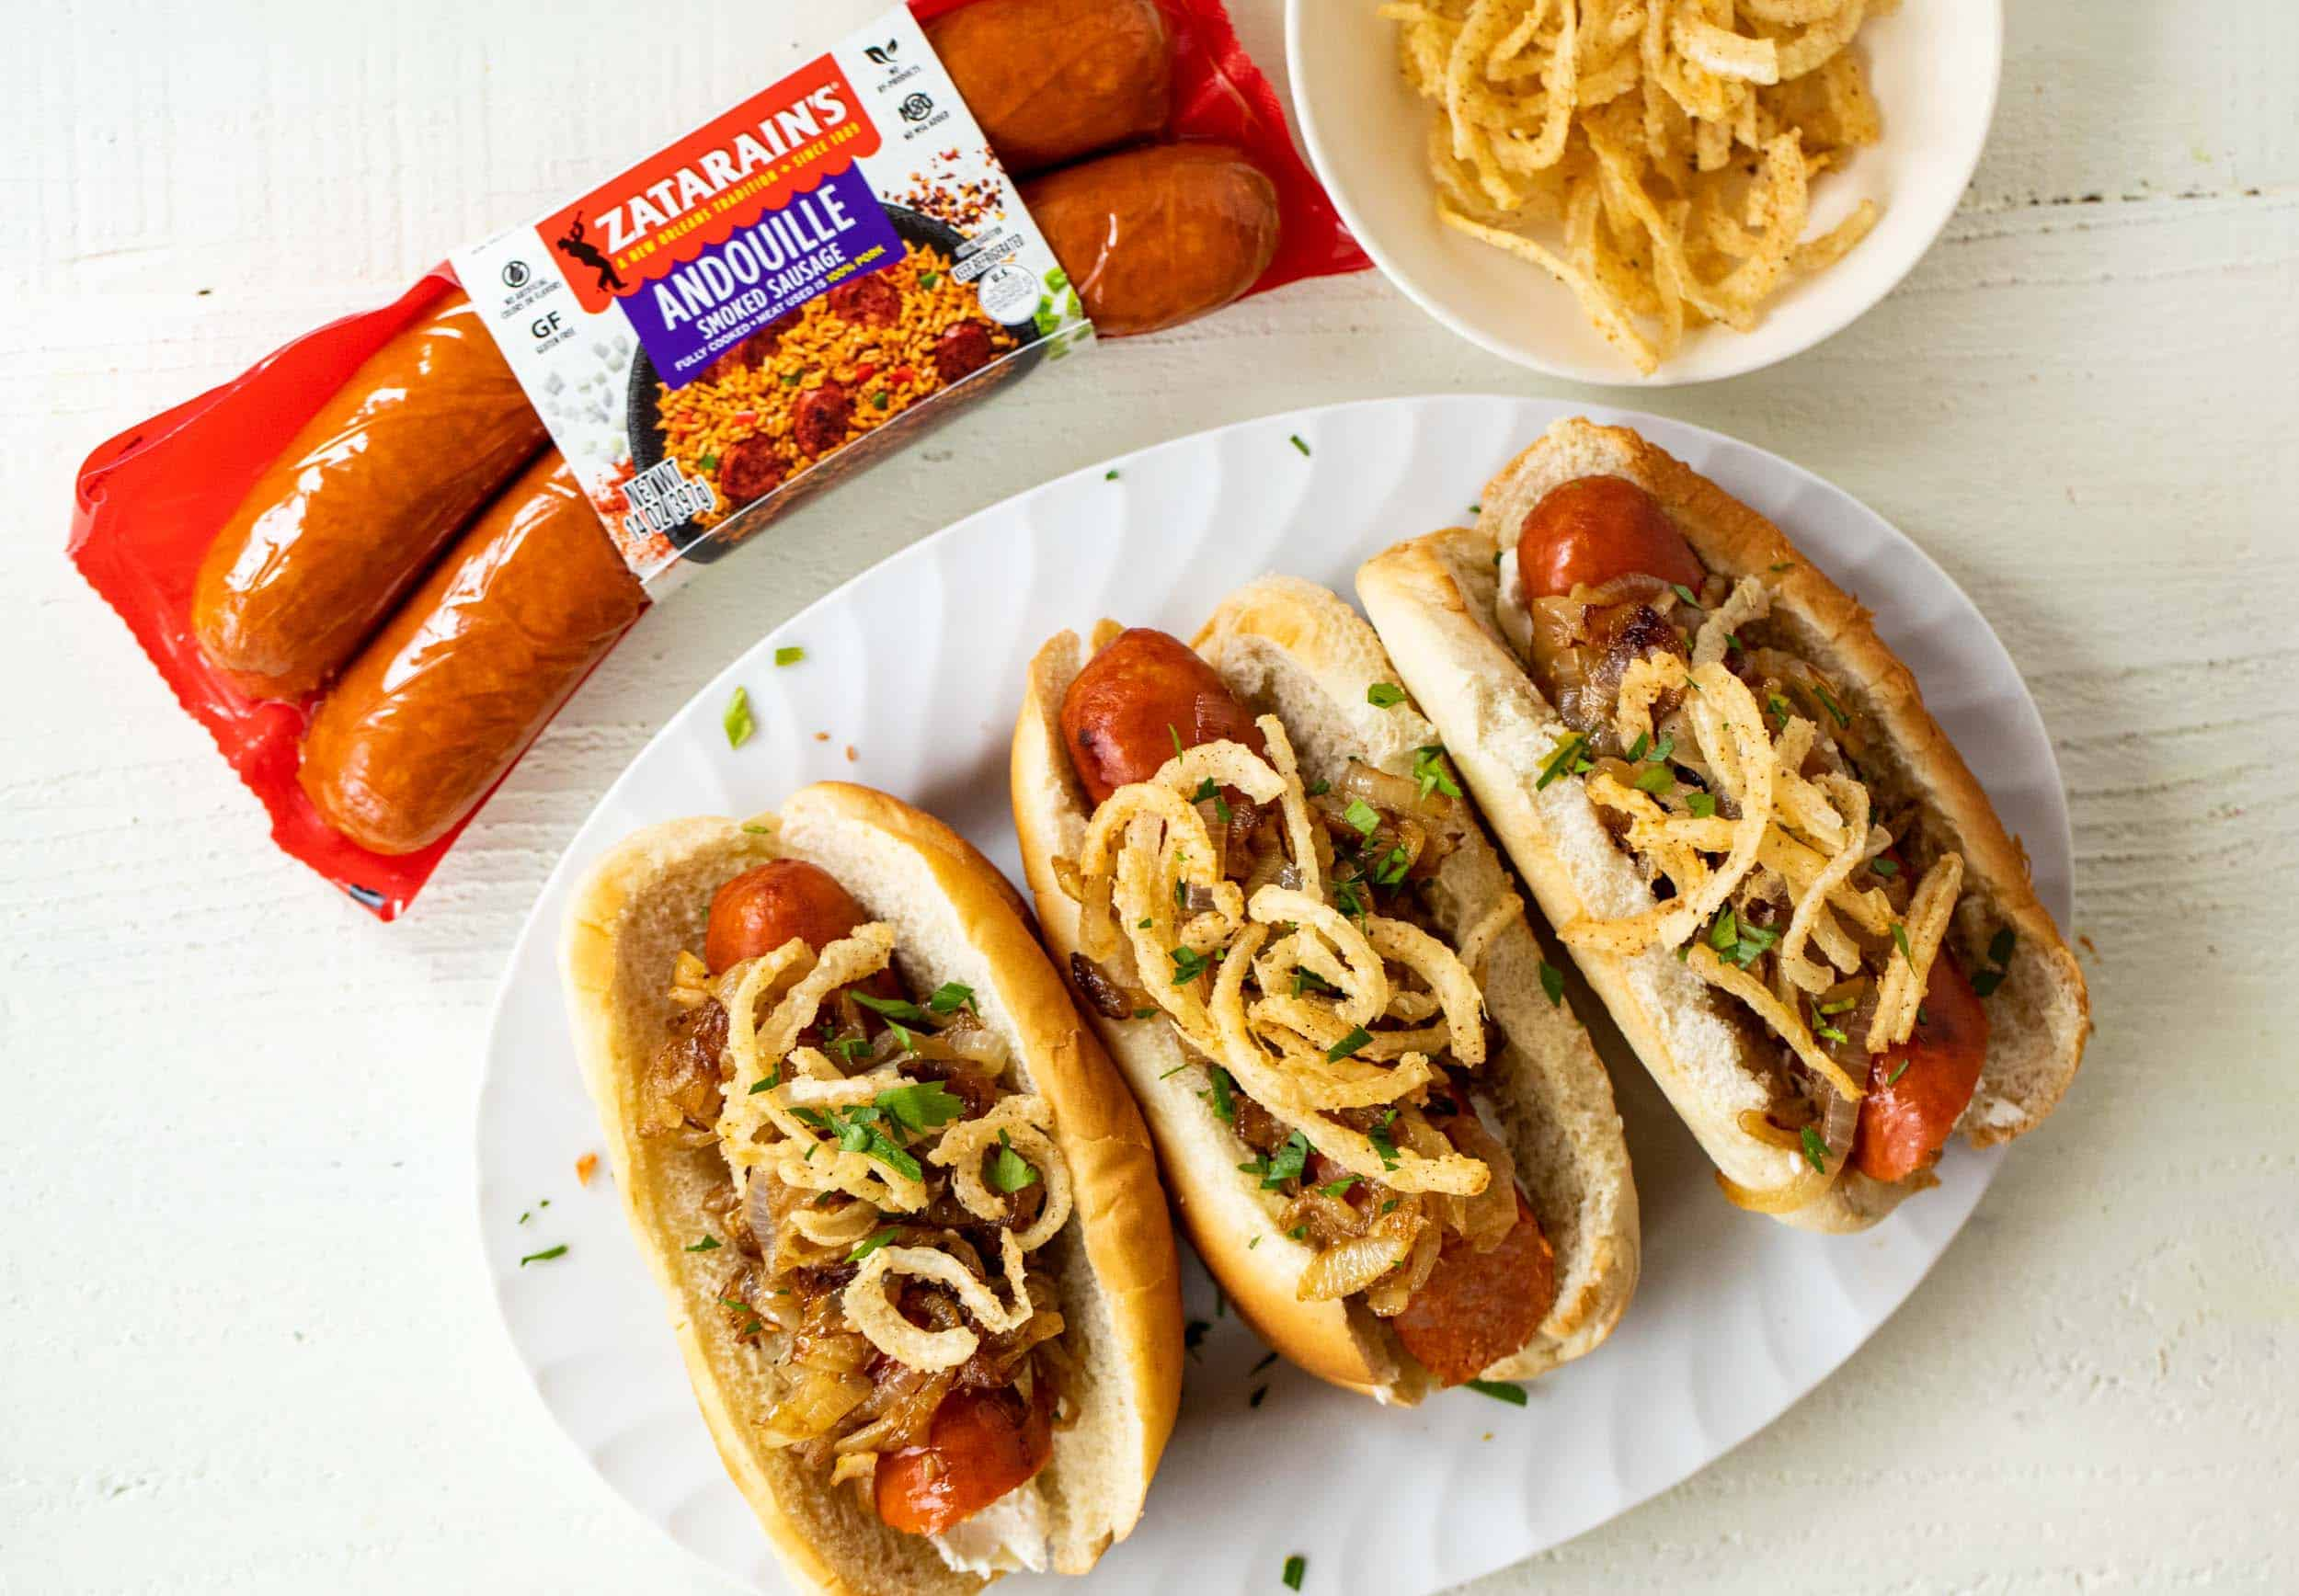 Caramelized Onion Sausage Dogs